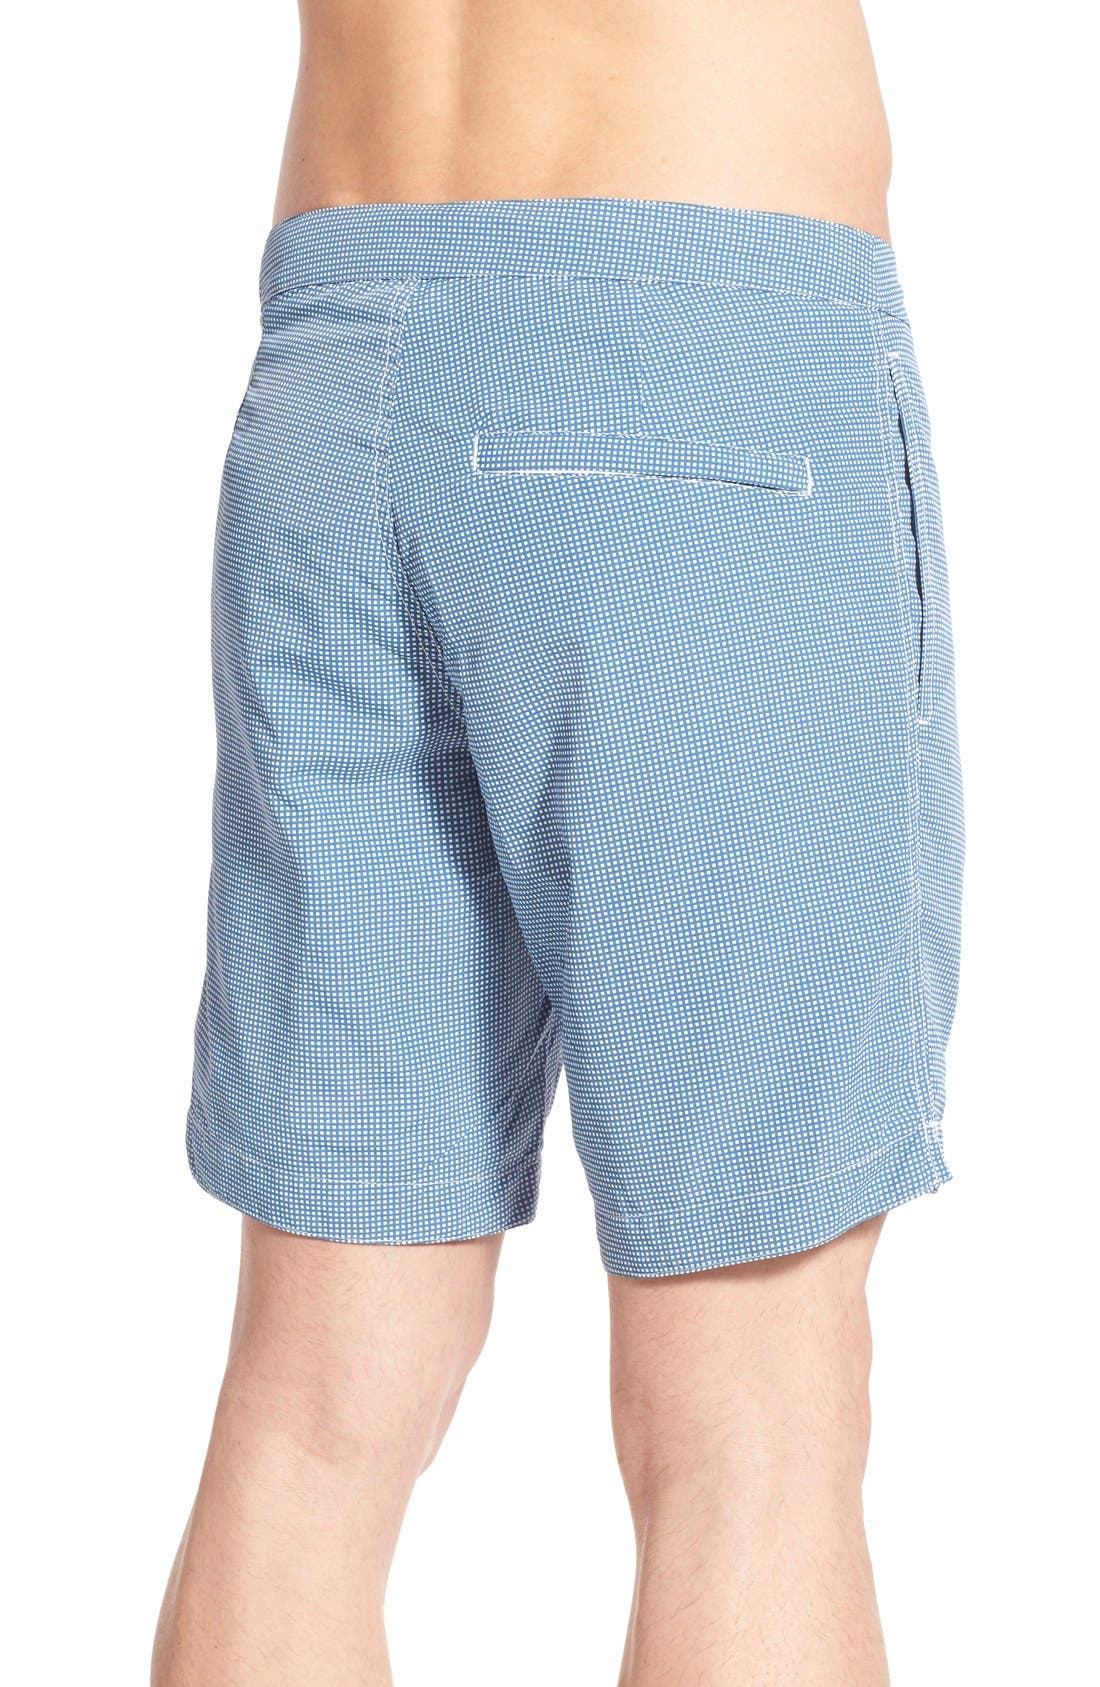 Aruba Tailored Fit Microcheck 8.5 Inch Swim Trunks,                             Alternate thumbnail 2, color,                             MICRO SQUARE ASH BLUE